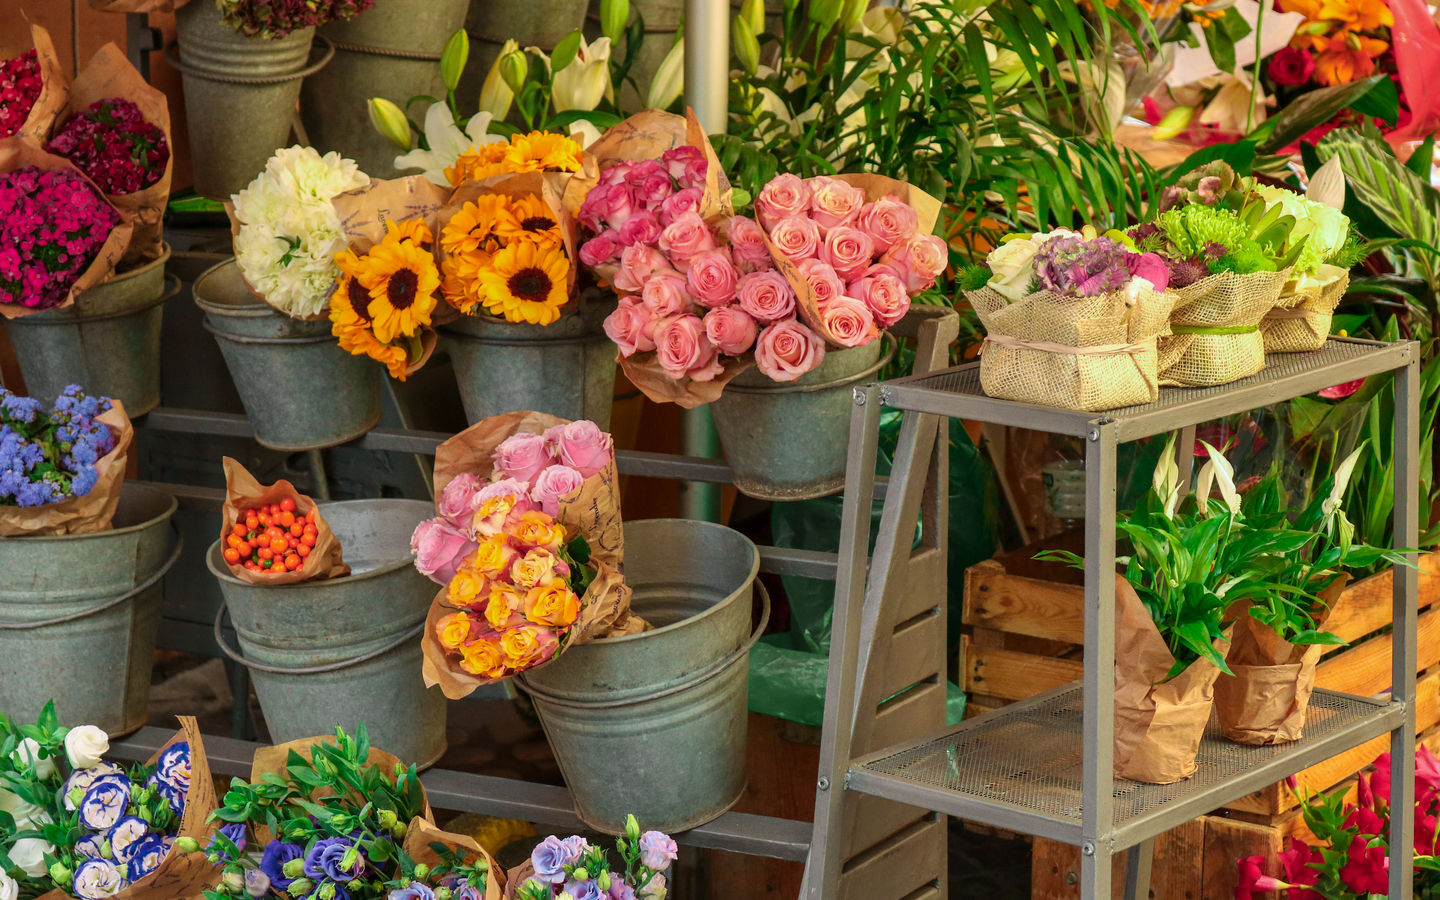 Flowers on display at a shop